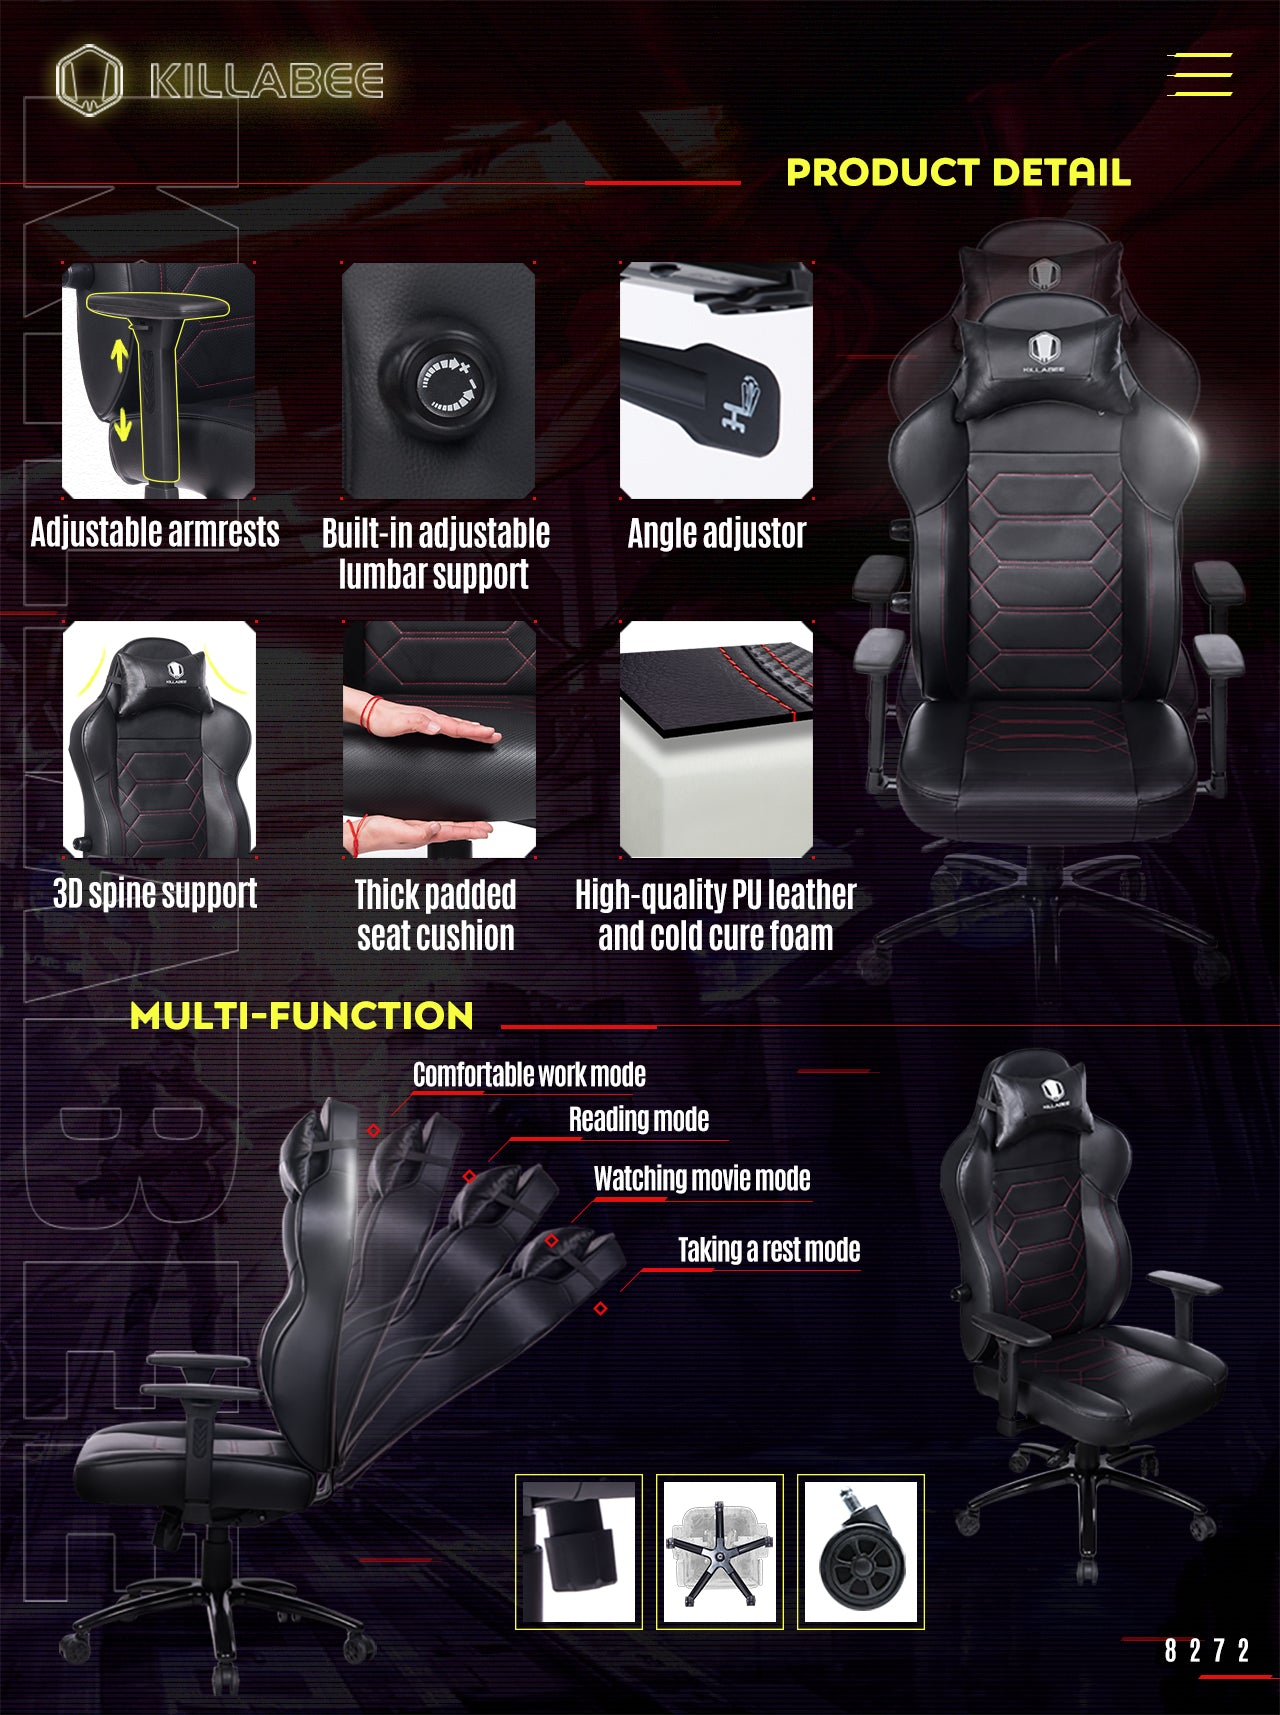 KILLABEE ERGONOMIC GAMING CHAIR 8272 BLACK FEATURES